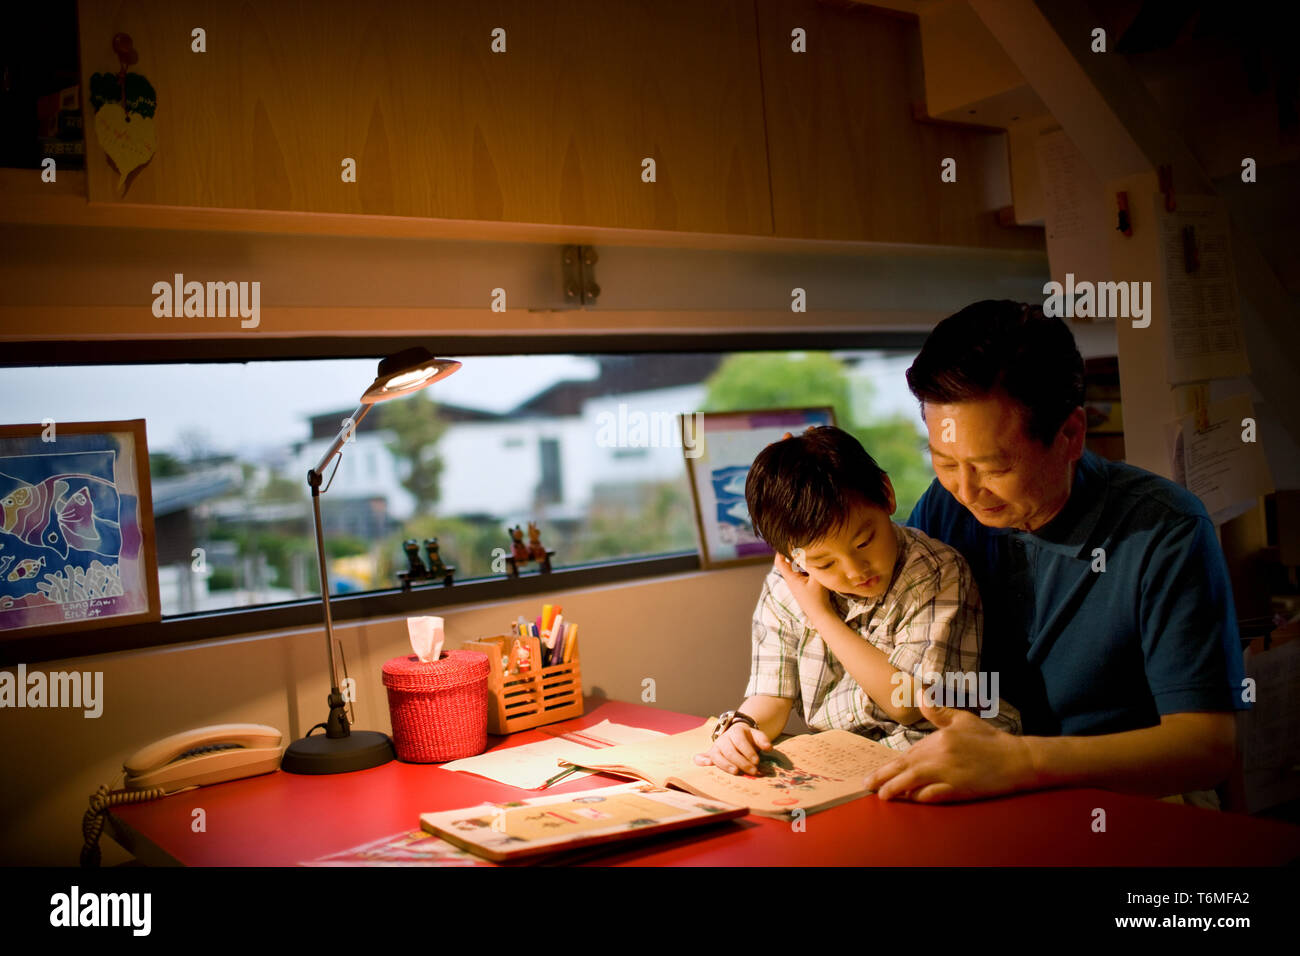 Mature man sitting reading with his son. - Stock Image